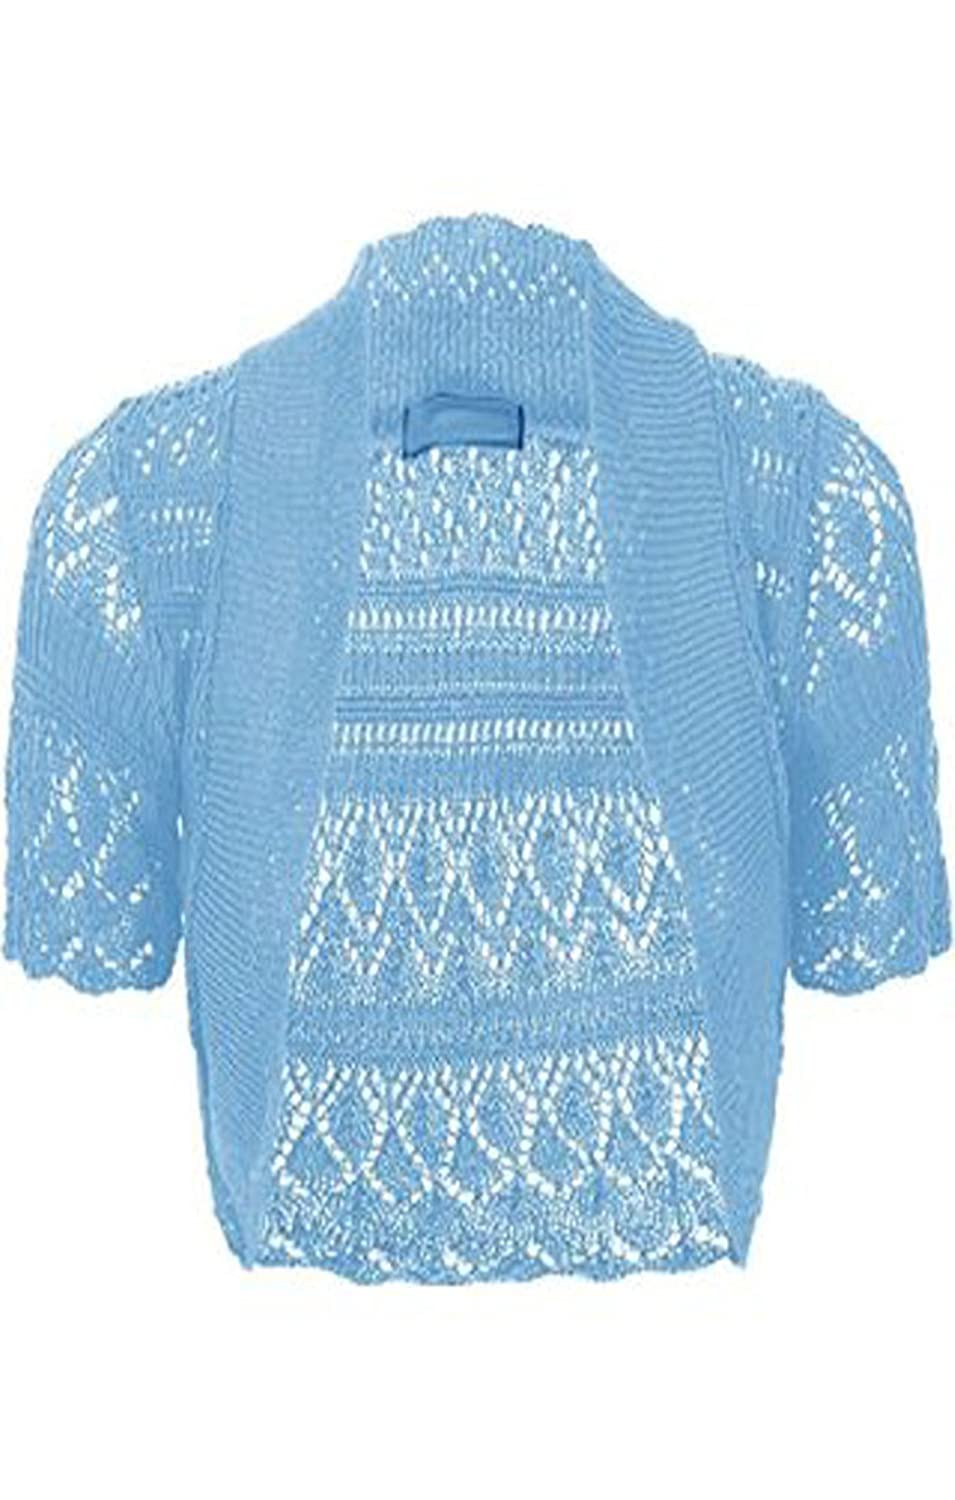 MyMixTrendz - Womens Crochet Knit Midi Sleeve Bolero Shrug at ...